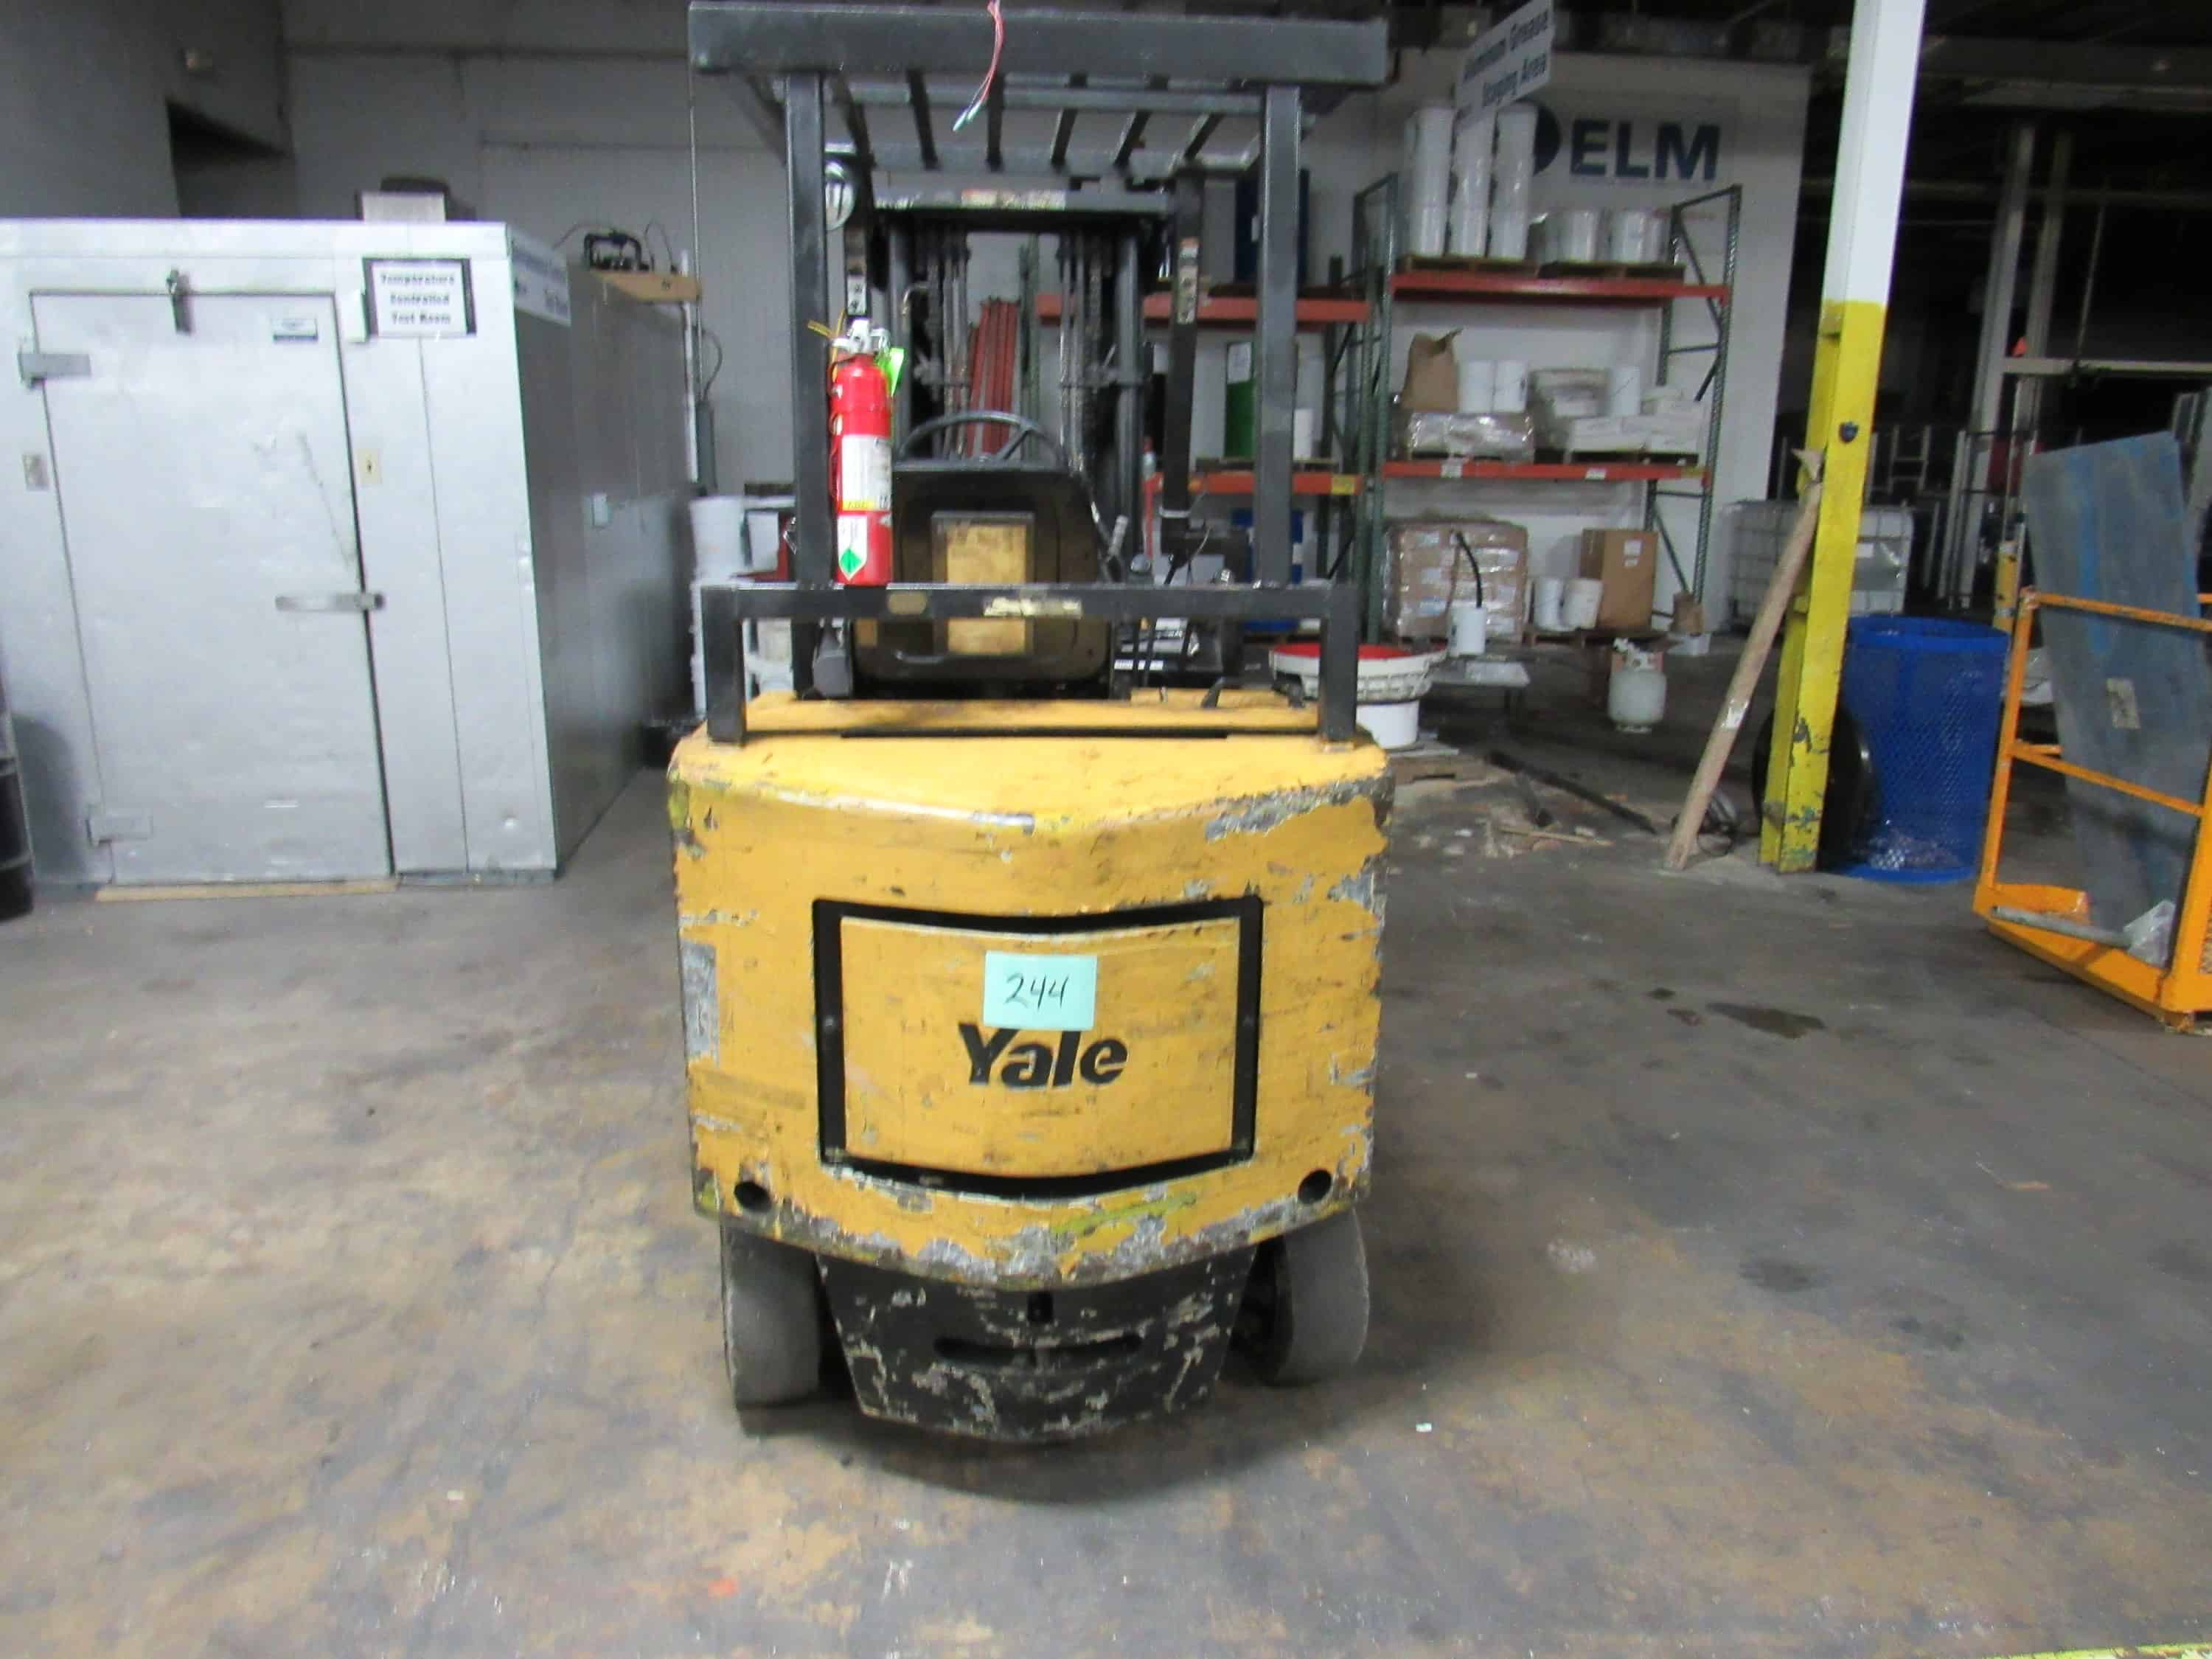 Yale Electric Sit Down Forklift truck, full control of forks, side shift forks gap and tilt control, fire extinguisher inspected through 2019. (Rigging and loading fees included in the selling price)(Located in Iowa)***EUSA***